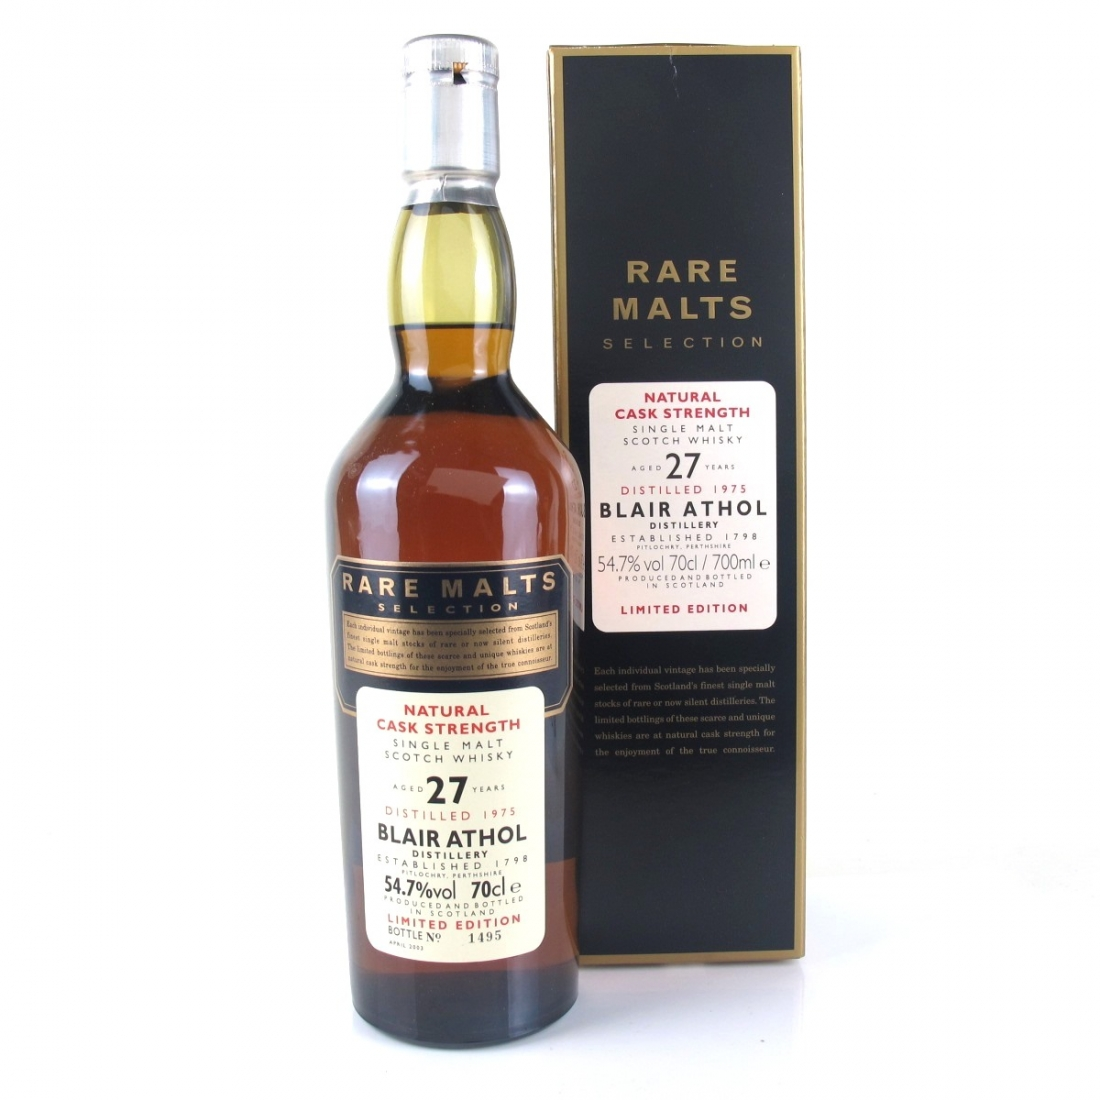 Blair Athol 1975 Rare Malt 27 Year Old / 54.7%